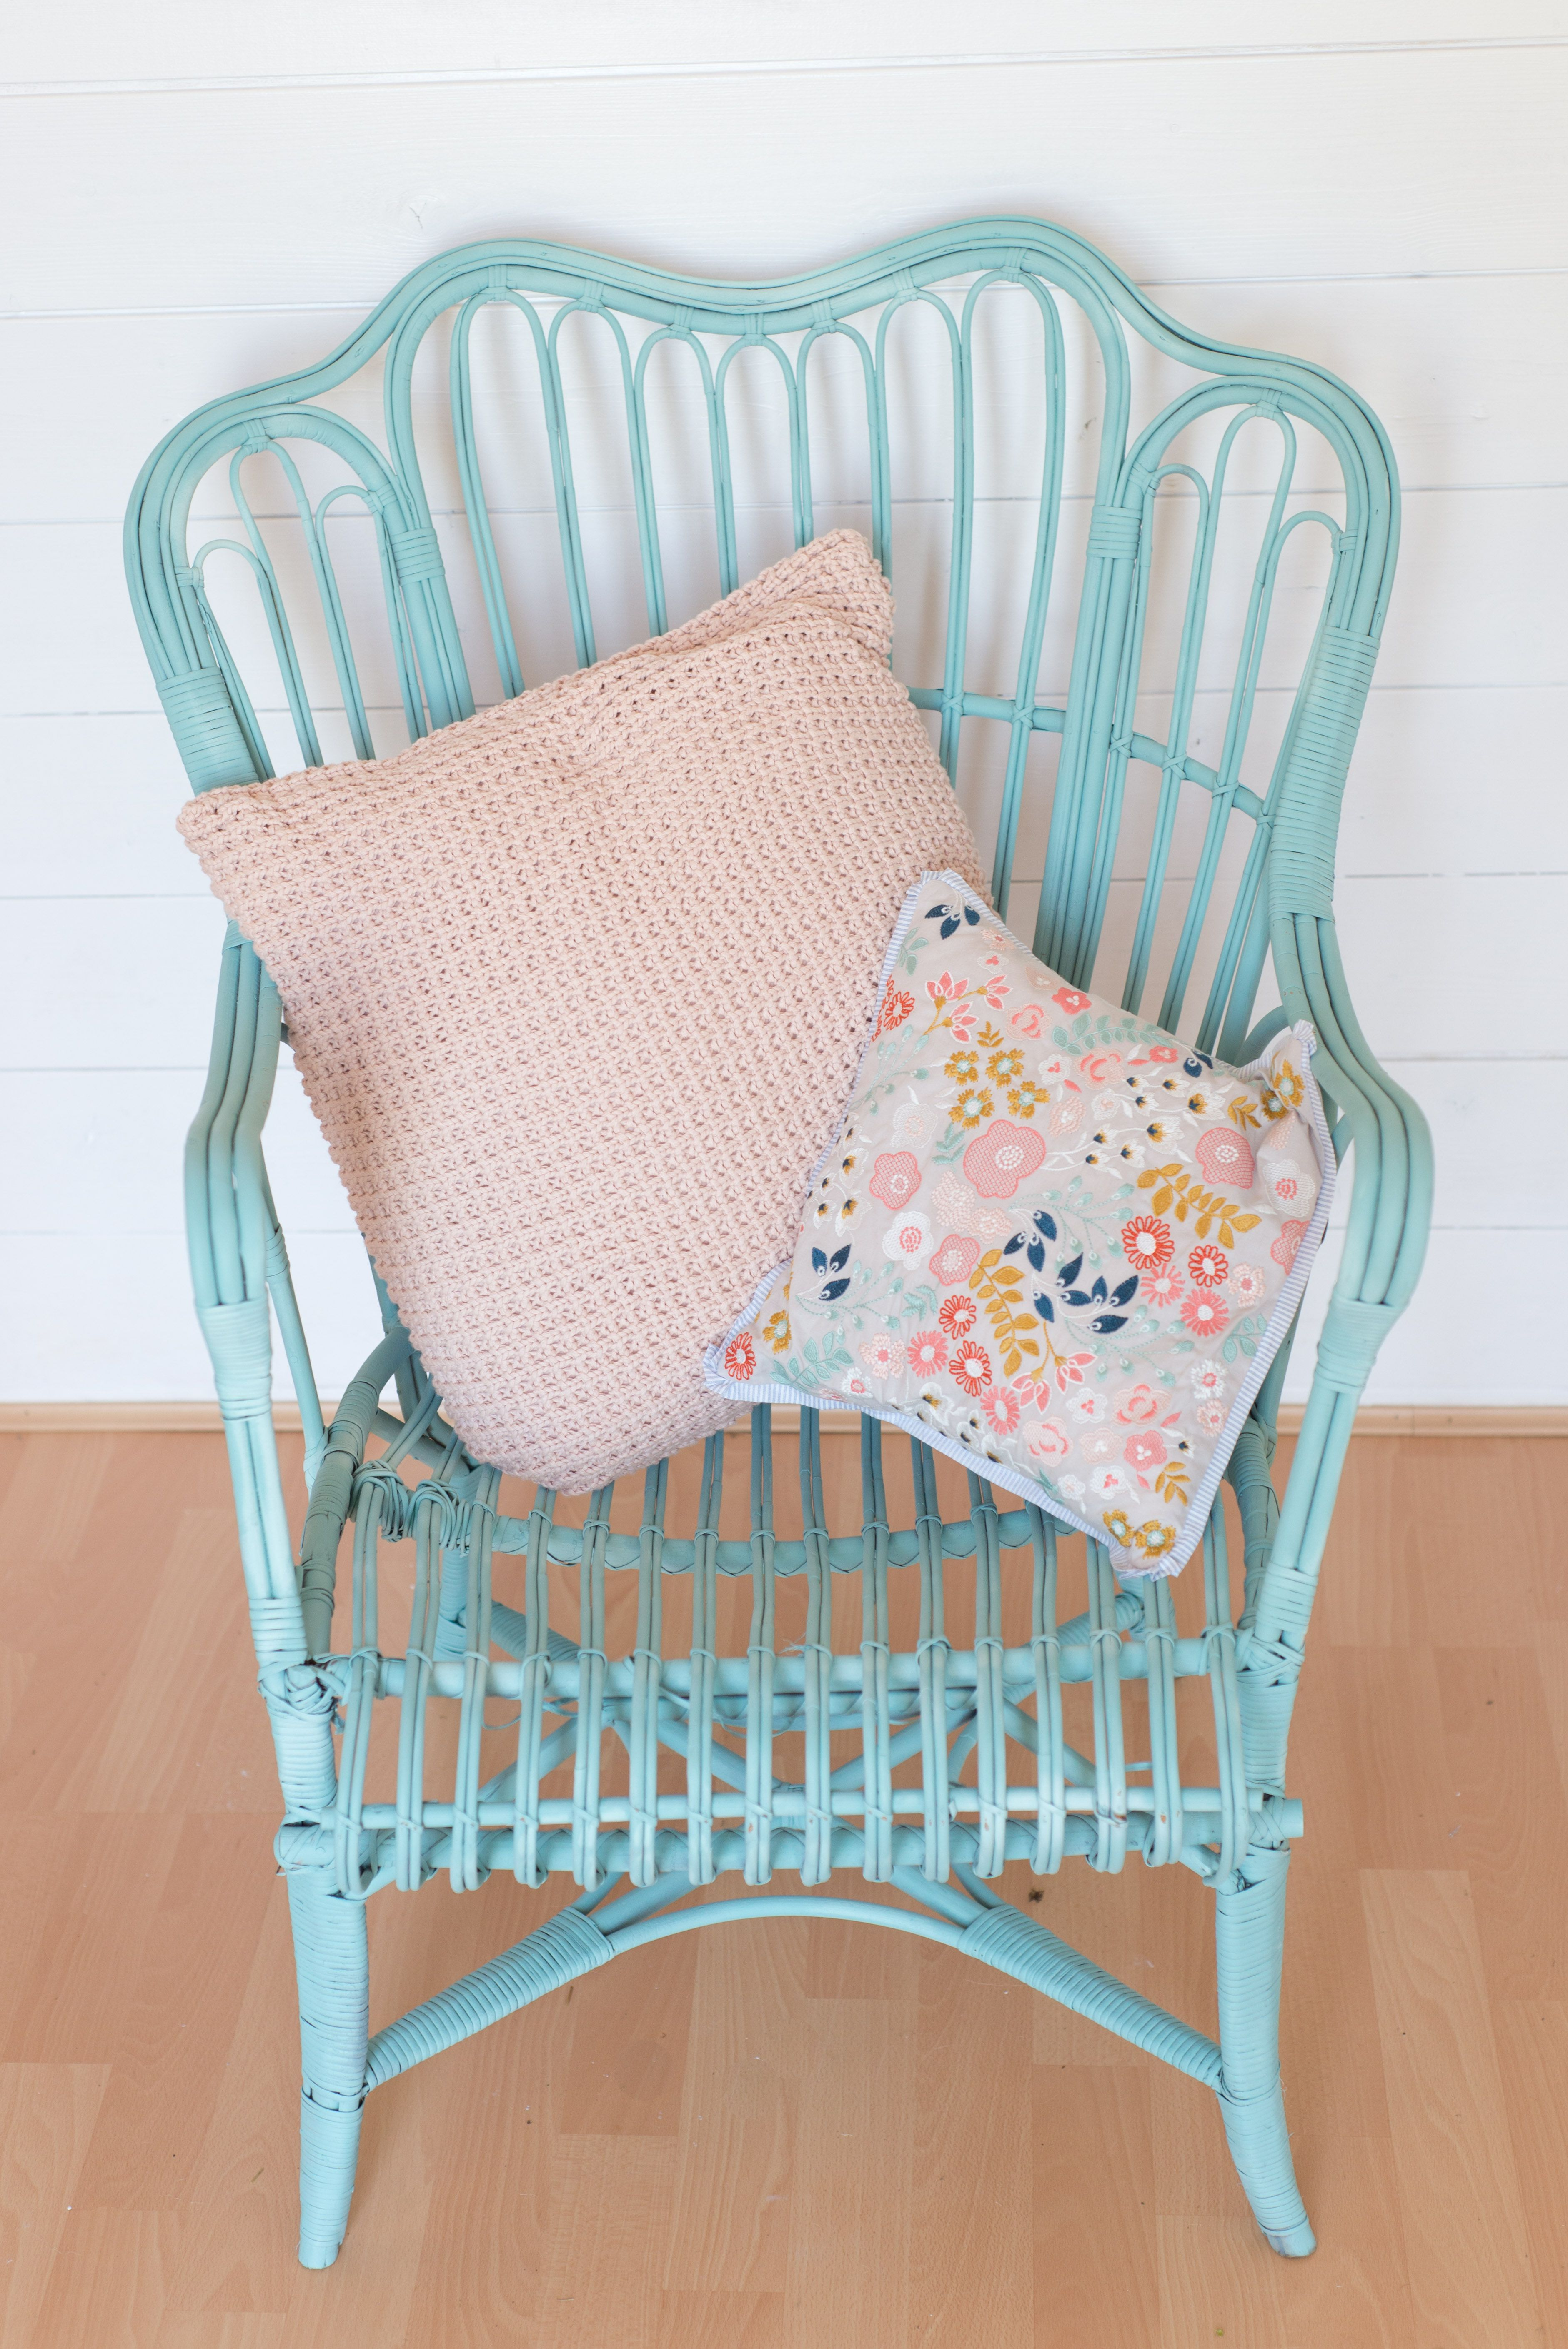 5 wicker chair makeover with spray chalk paint | Chair makeover ...